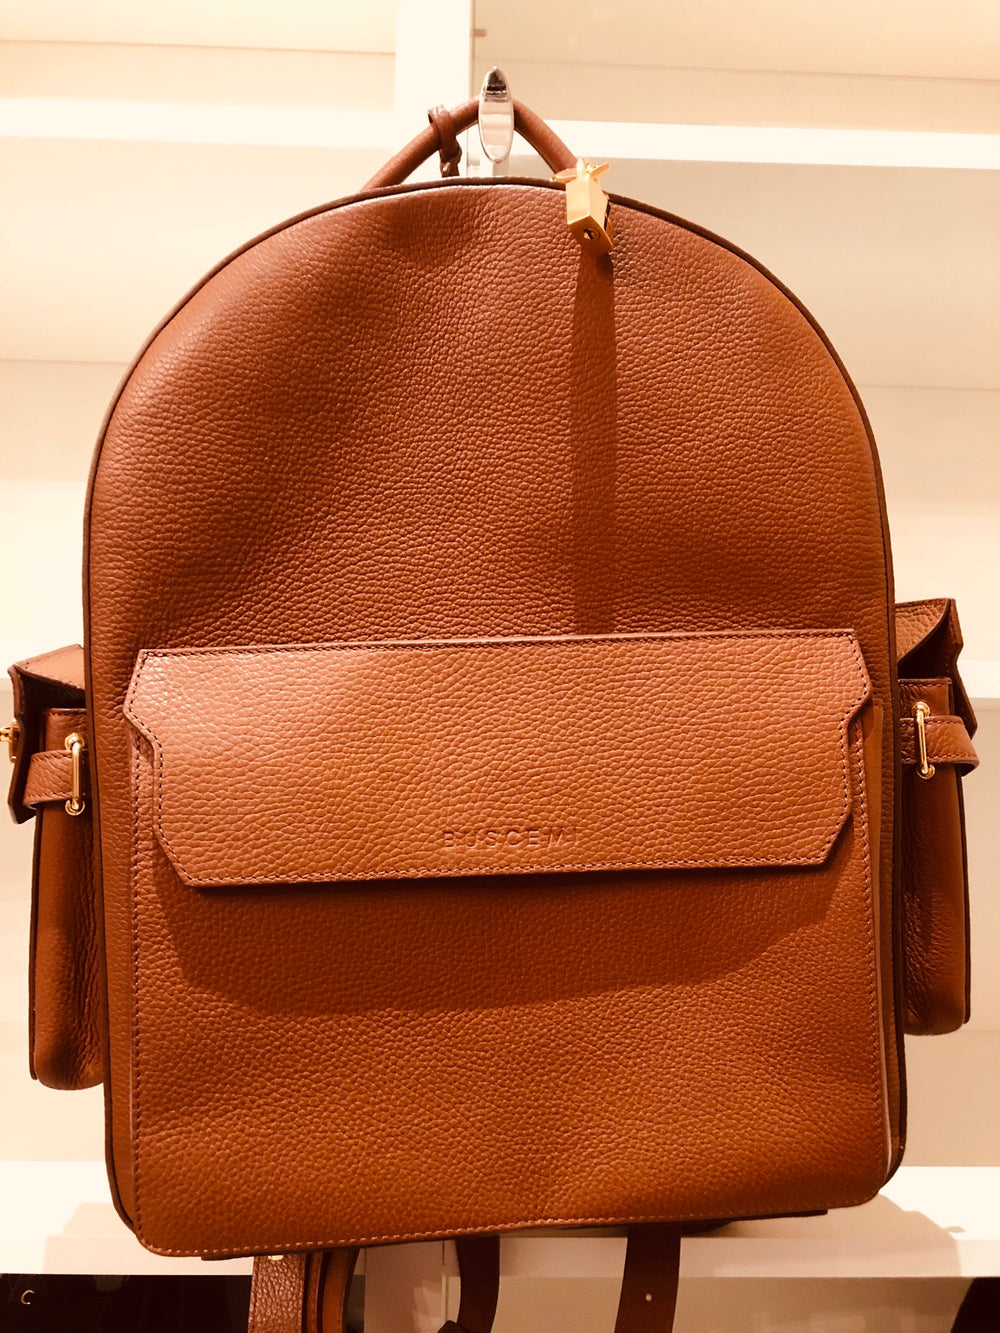 Buscemi PHD Leather Backpack in Whiskey